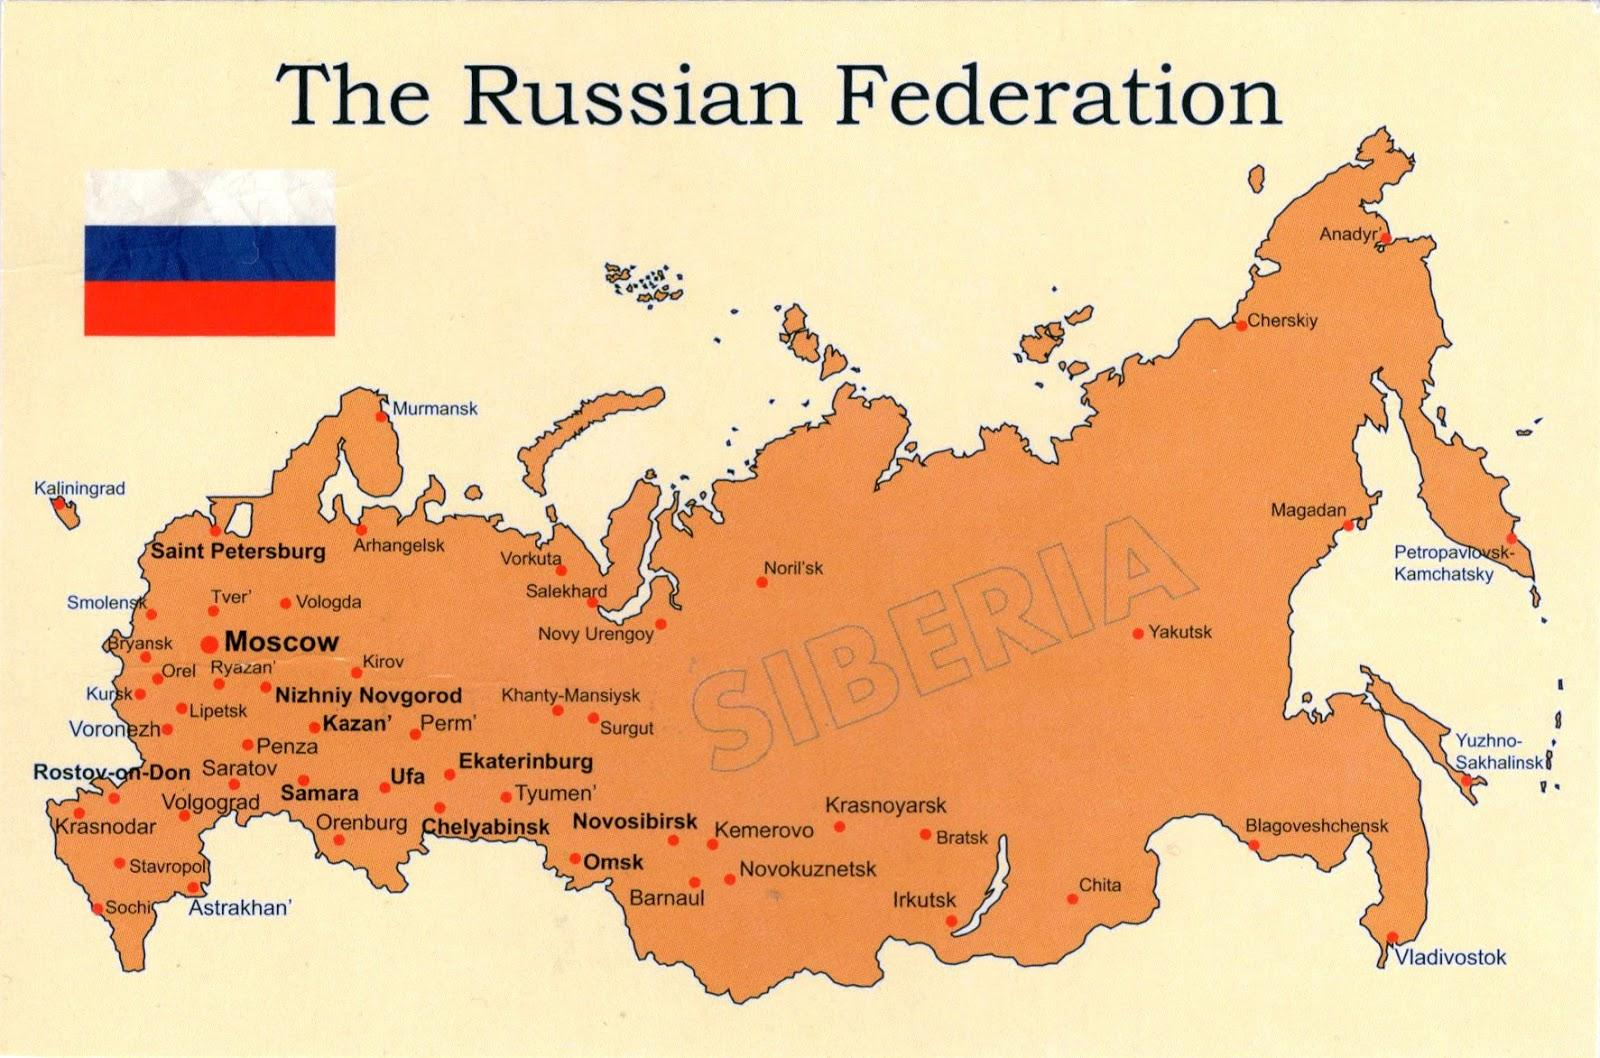 an overview of russia Russia overview, population, largest cities, features, national composition, tourism, nature, pictures.